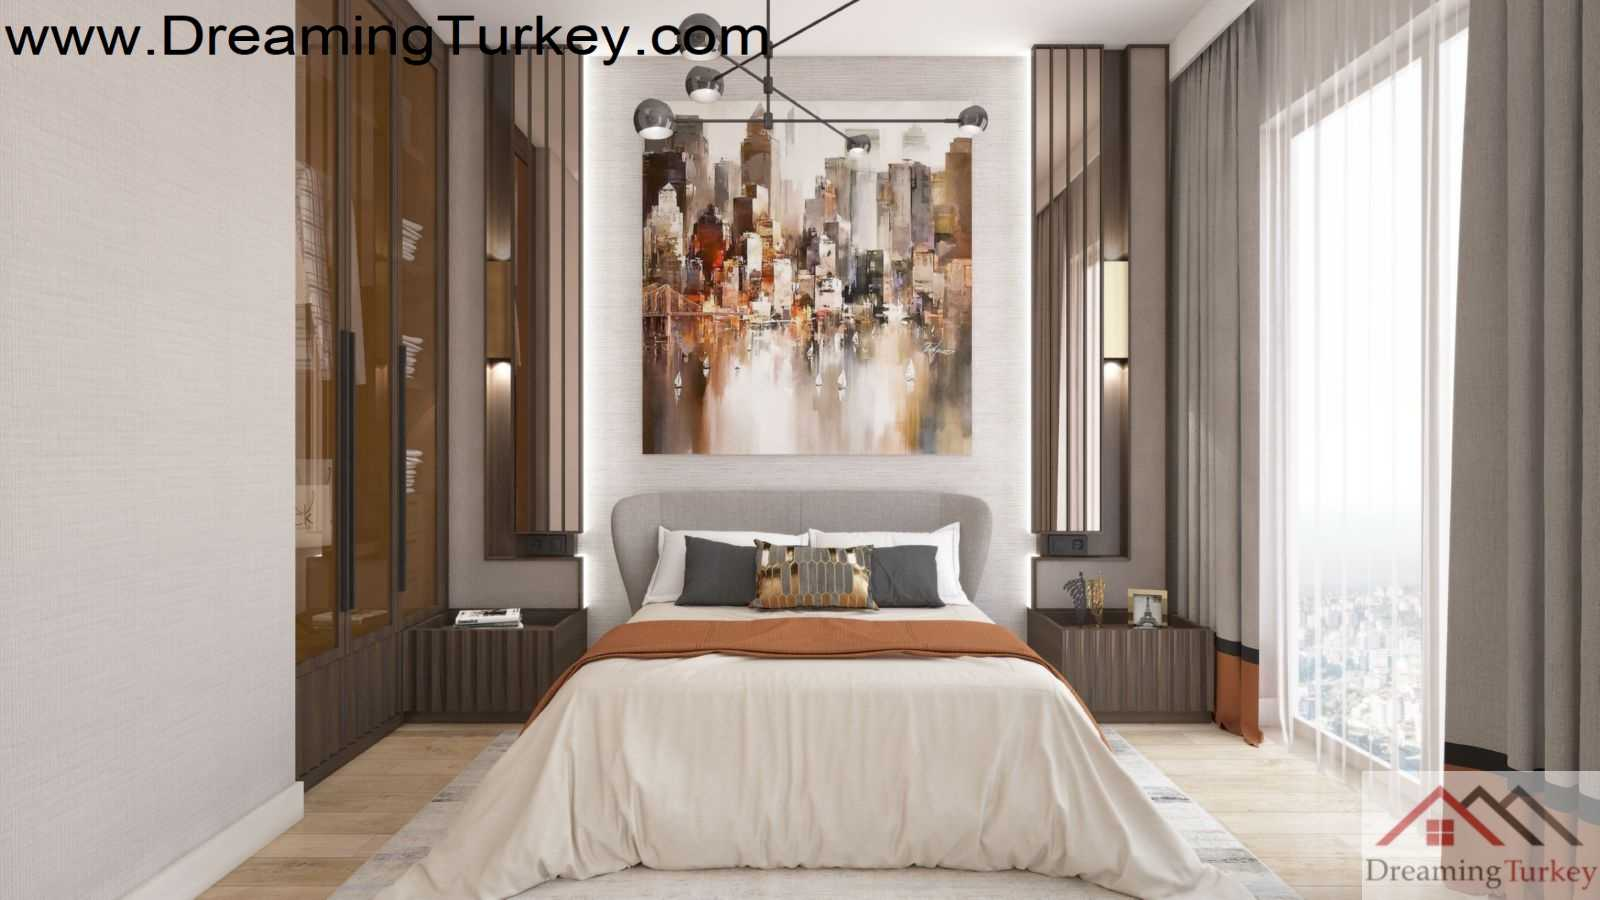 2-Bedroom Apartment in the Center of Istanbul